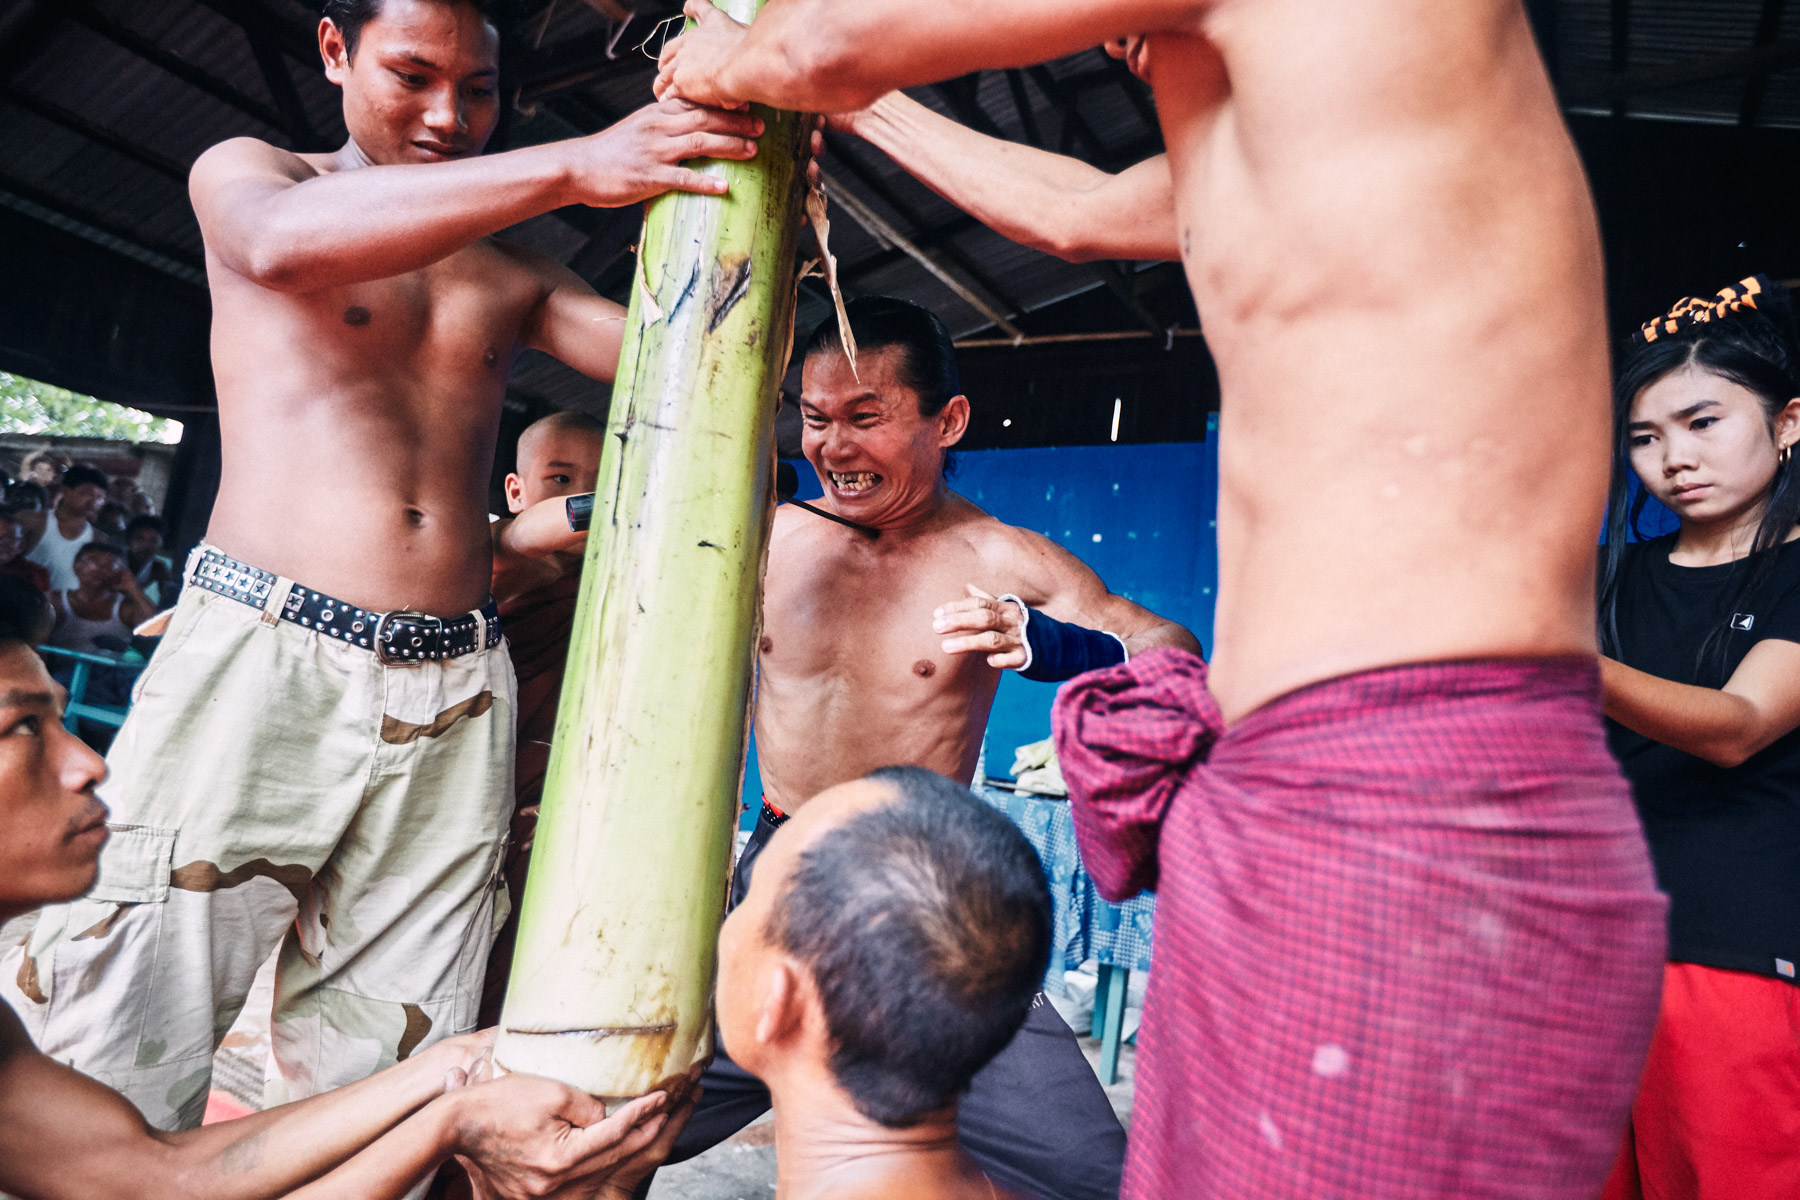 A Burmese strongman visits a monastery in Mandalay and performs feats of strength and endurance for the crowd.